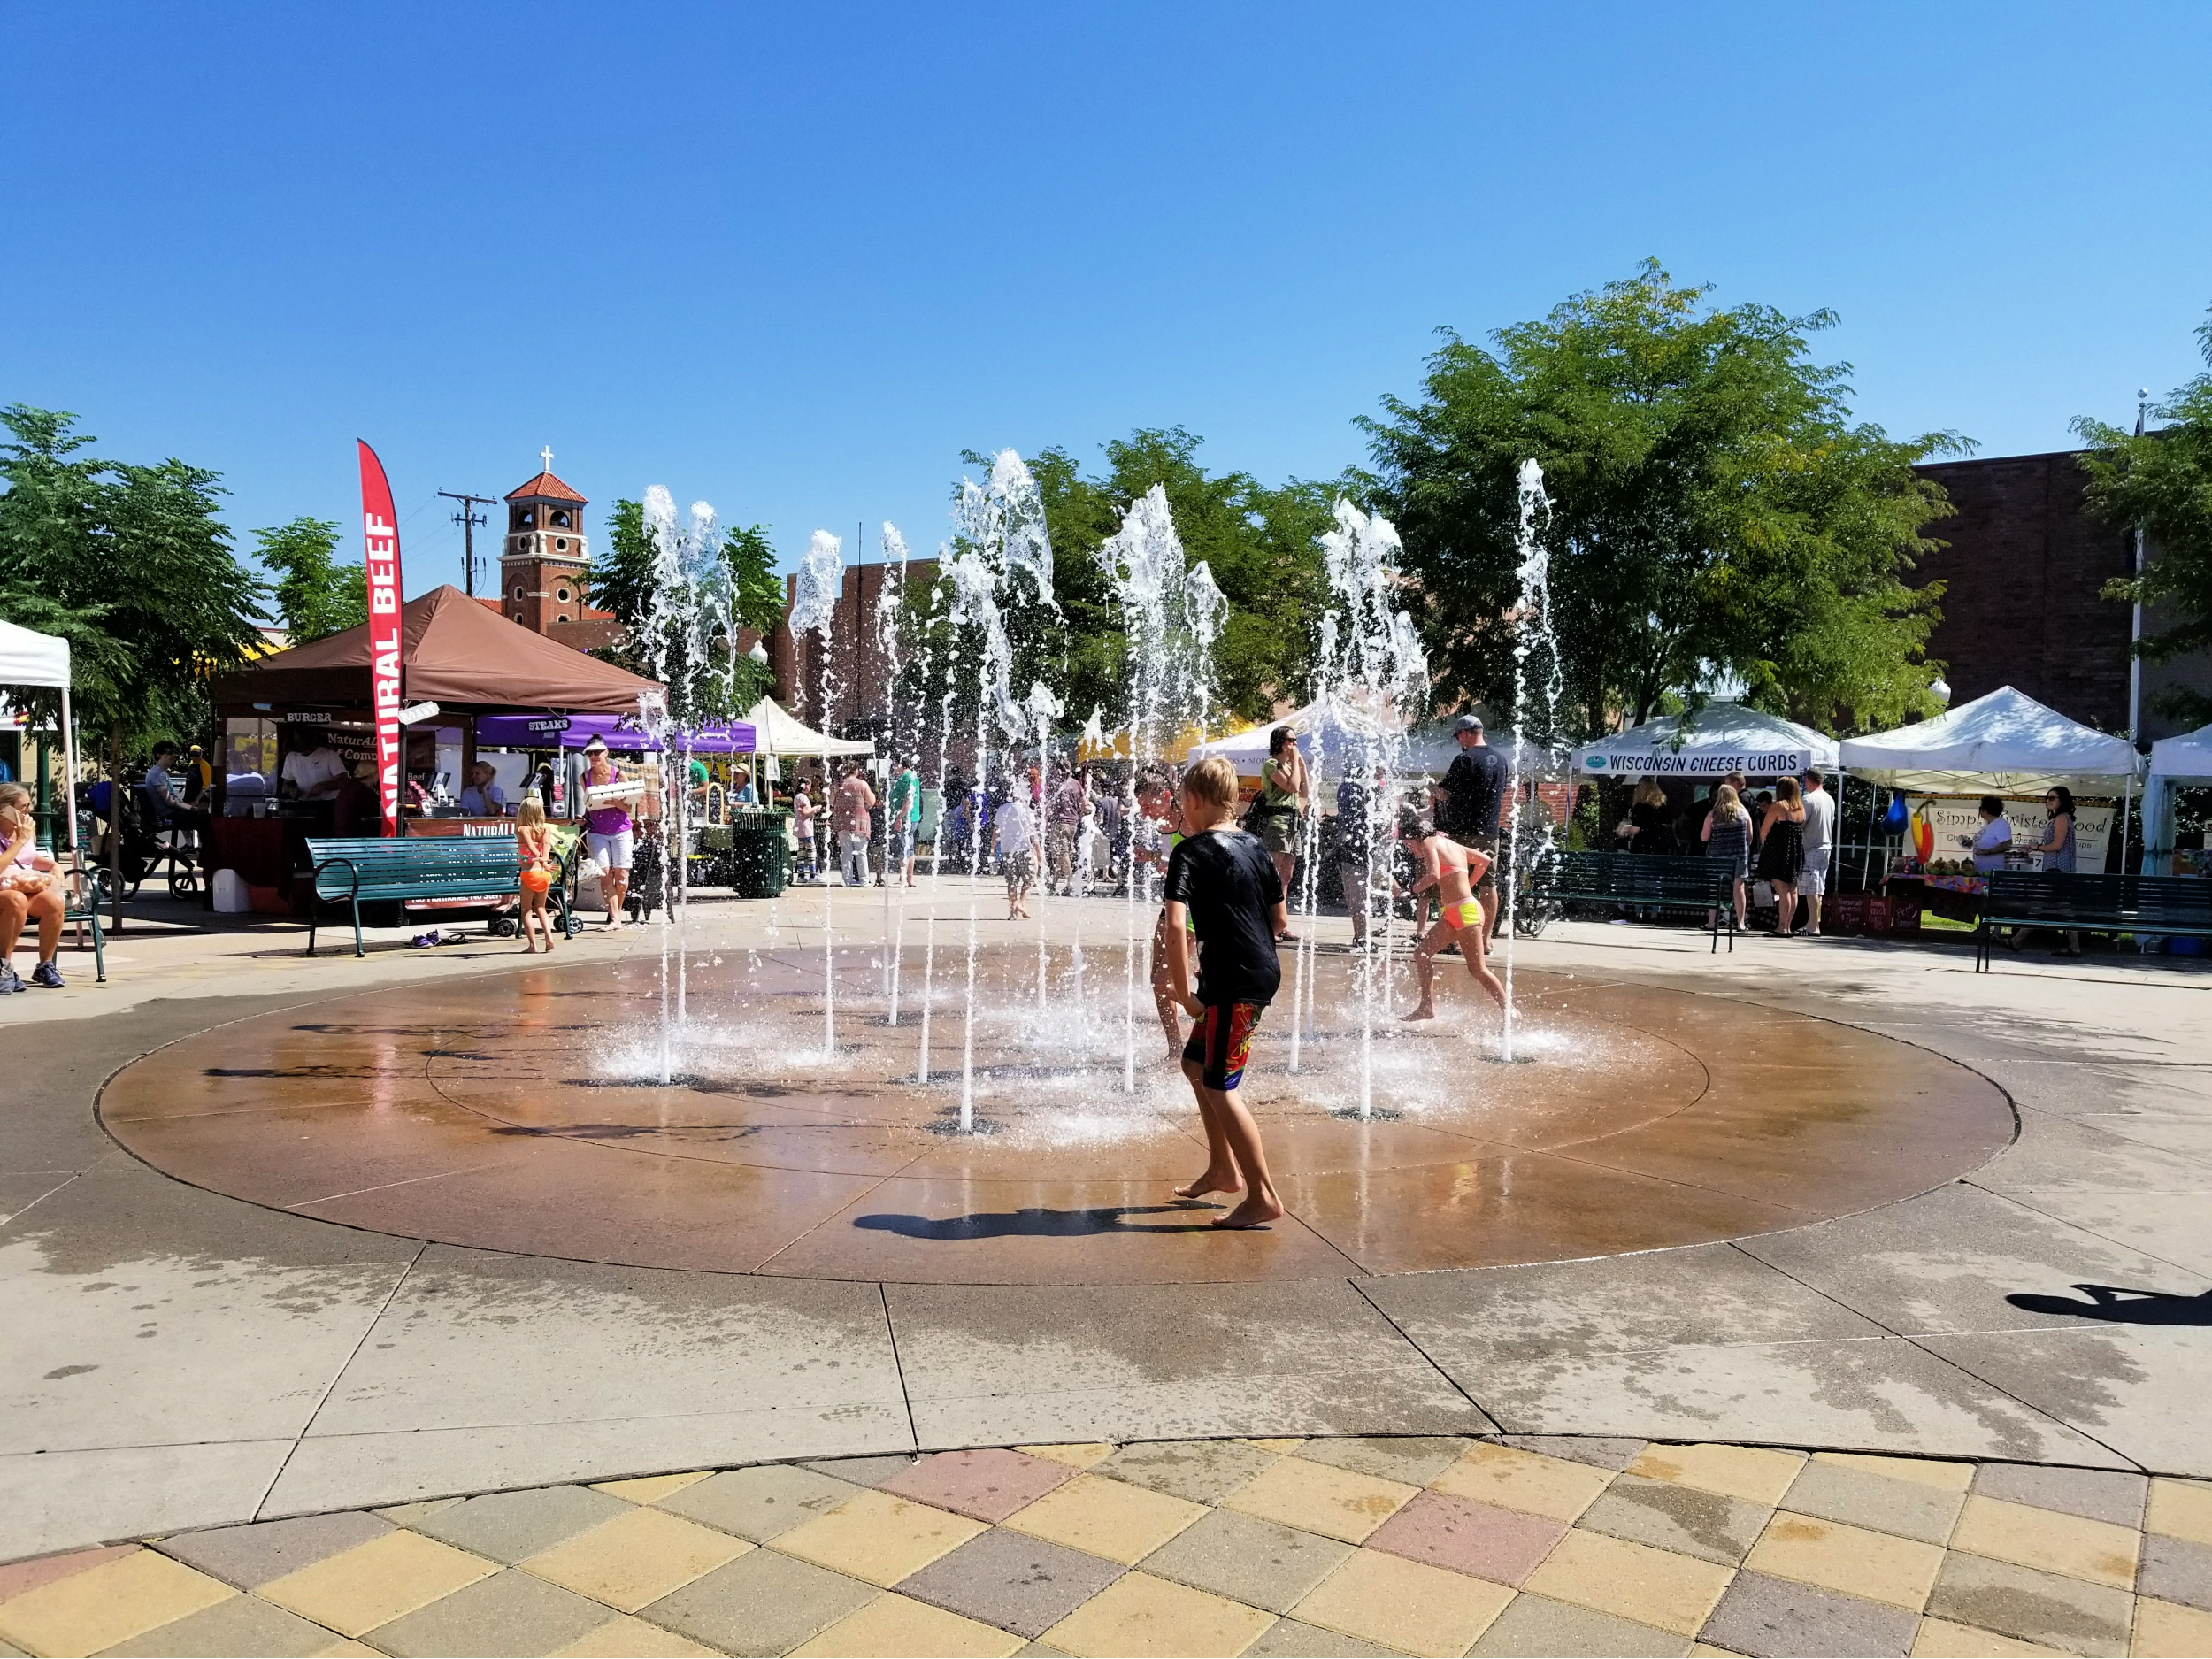 Scrumptious Arvada is located a few blocks from Olde Town Arvada Square and a chance for the kids to cool off in its splash pad. Photo: Diana Rowe